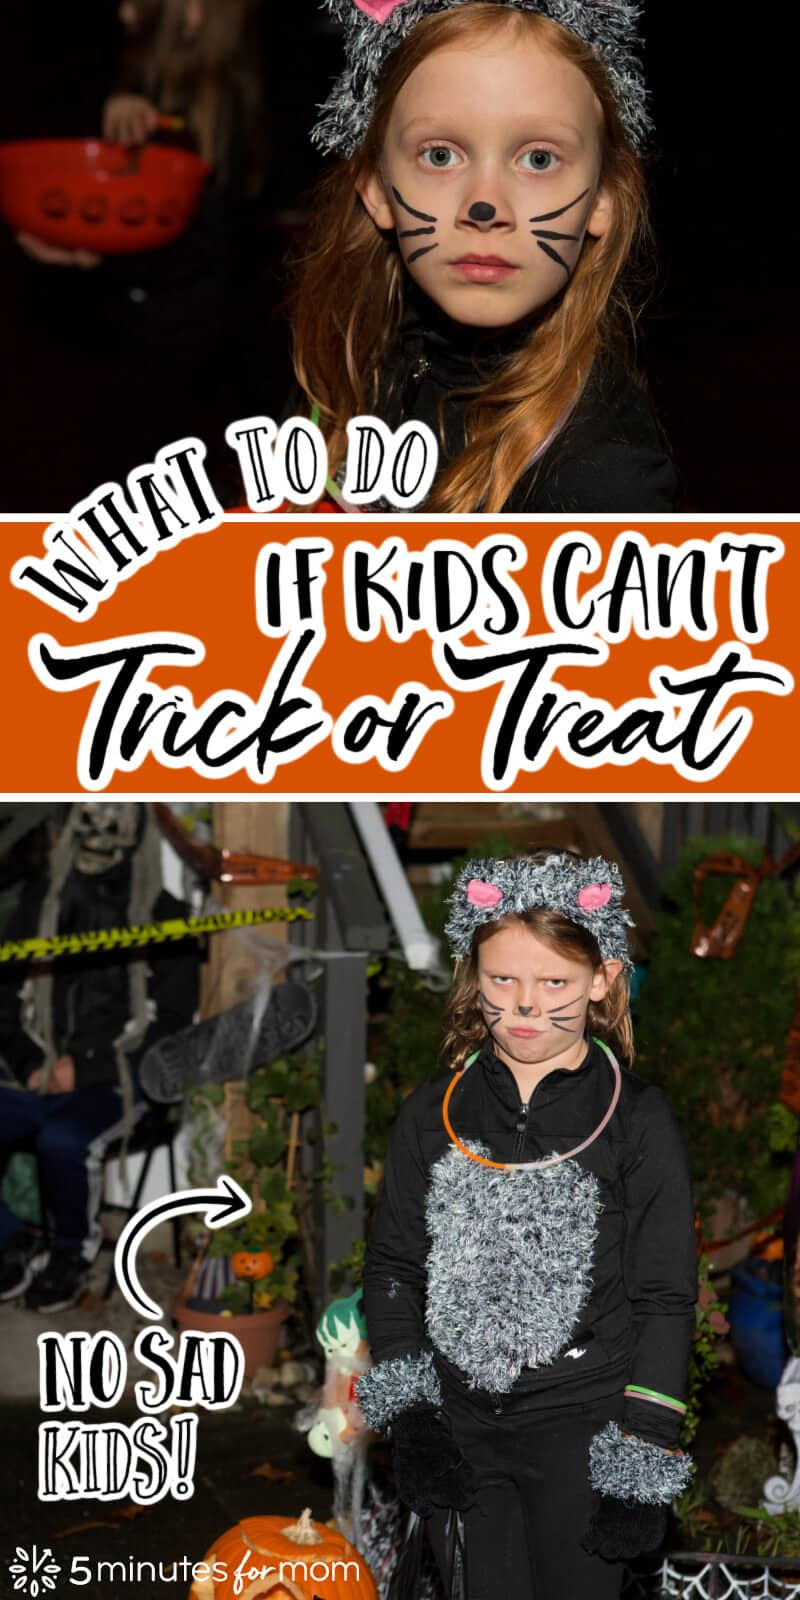 What to Do If Kids Can't Trick or Treat